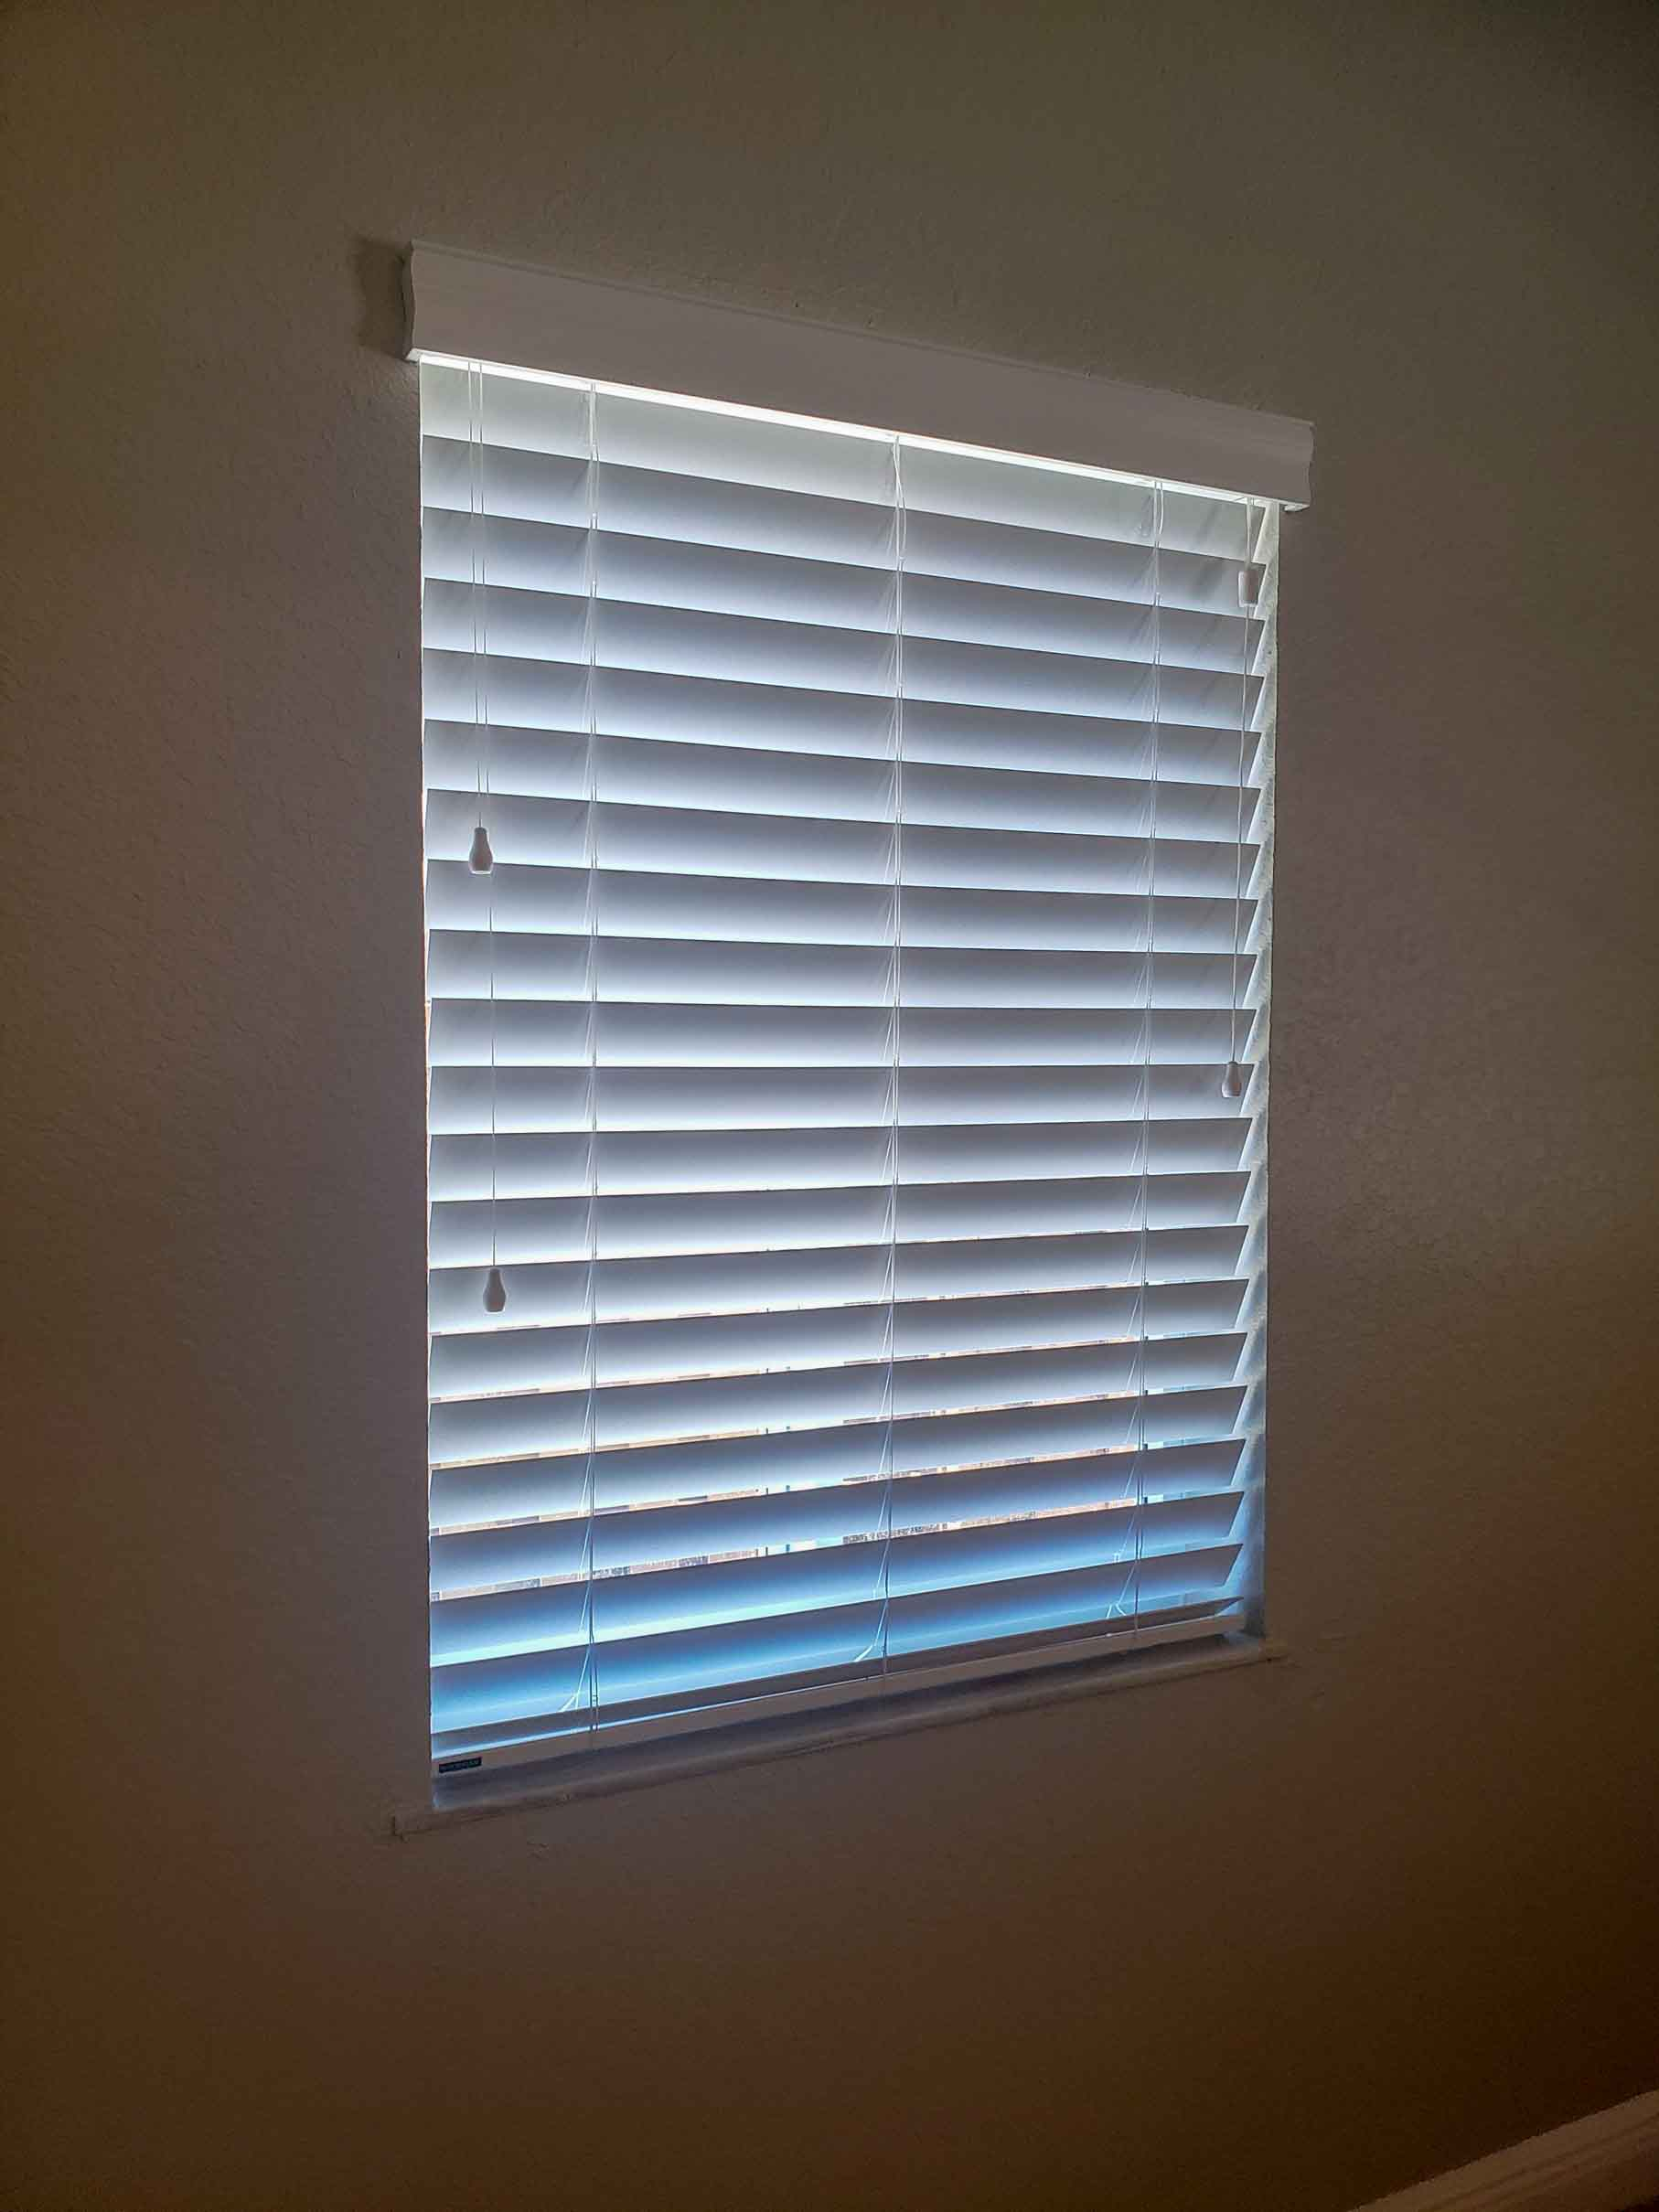 wood blinds gallery WOOD BLINDS GALLERY 20180428 133457